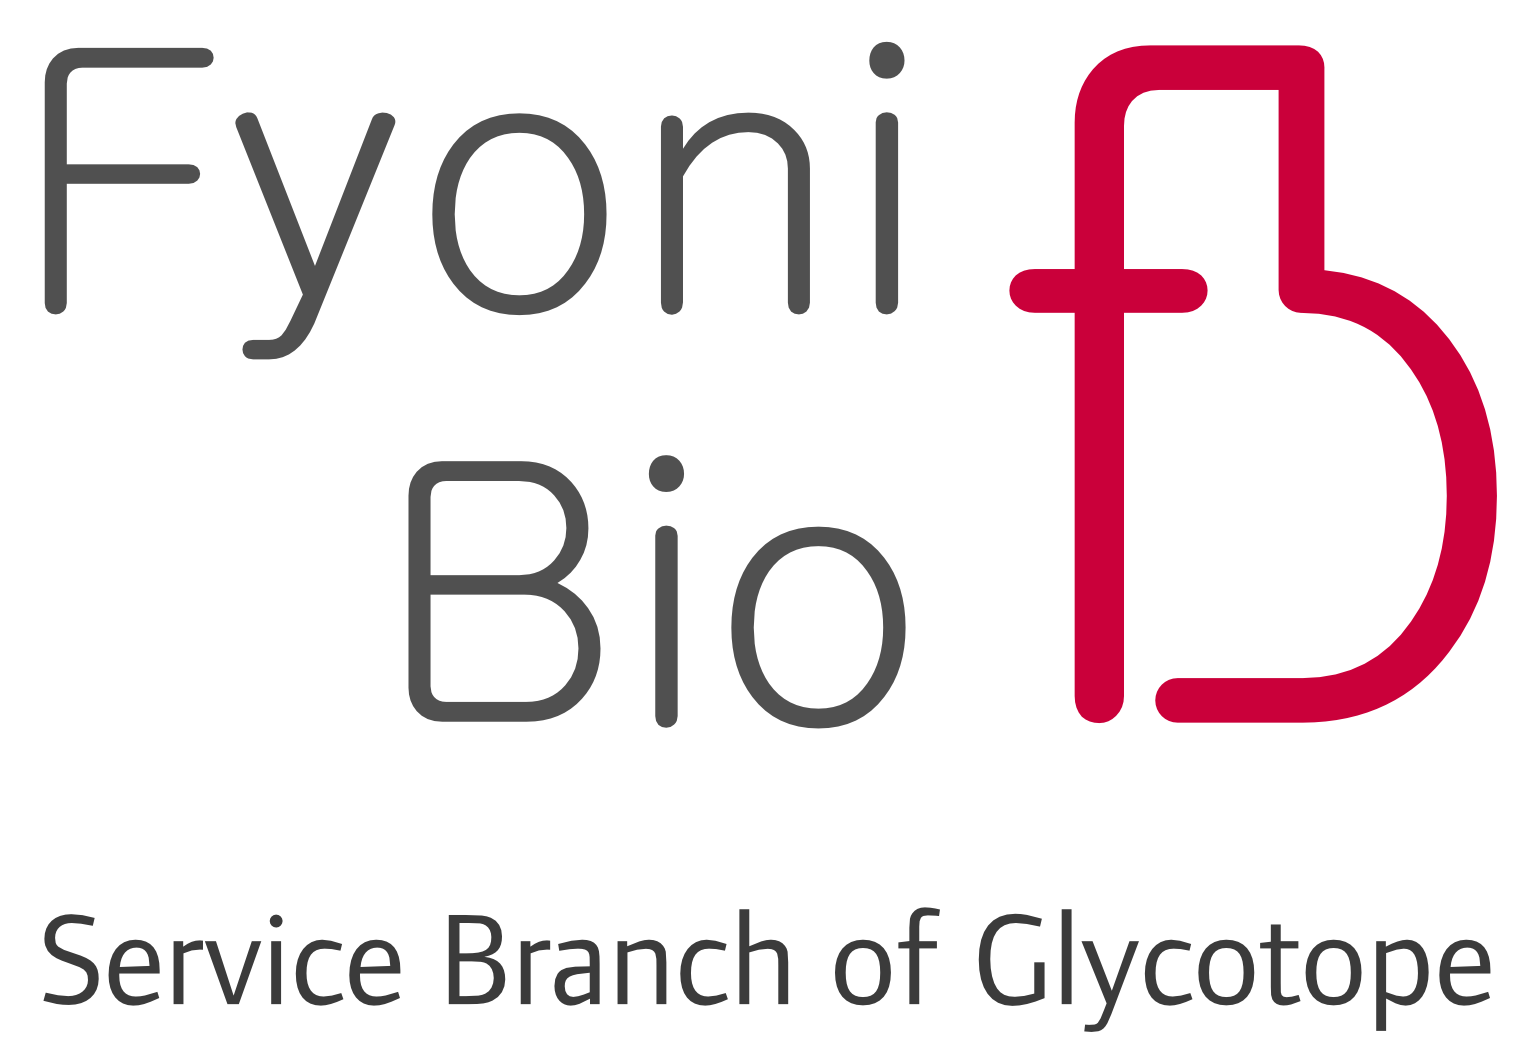 FyoniBio, the service branch of Glycotope